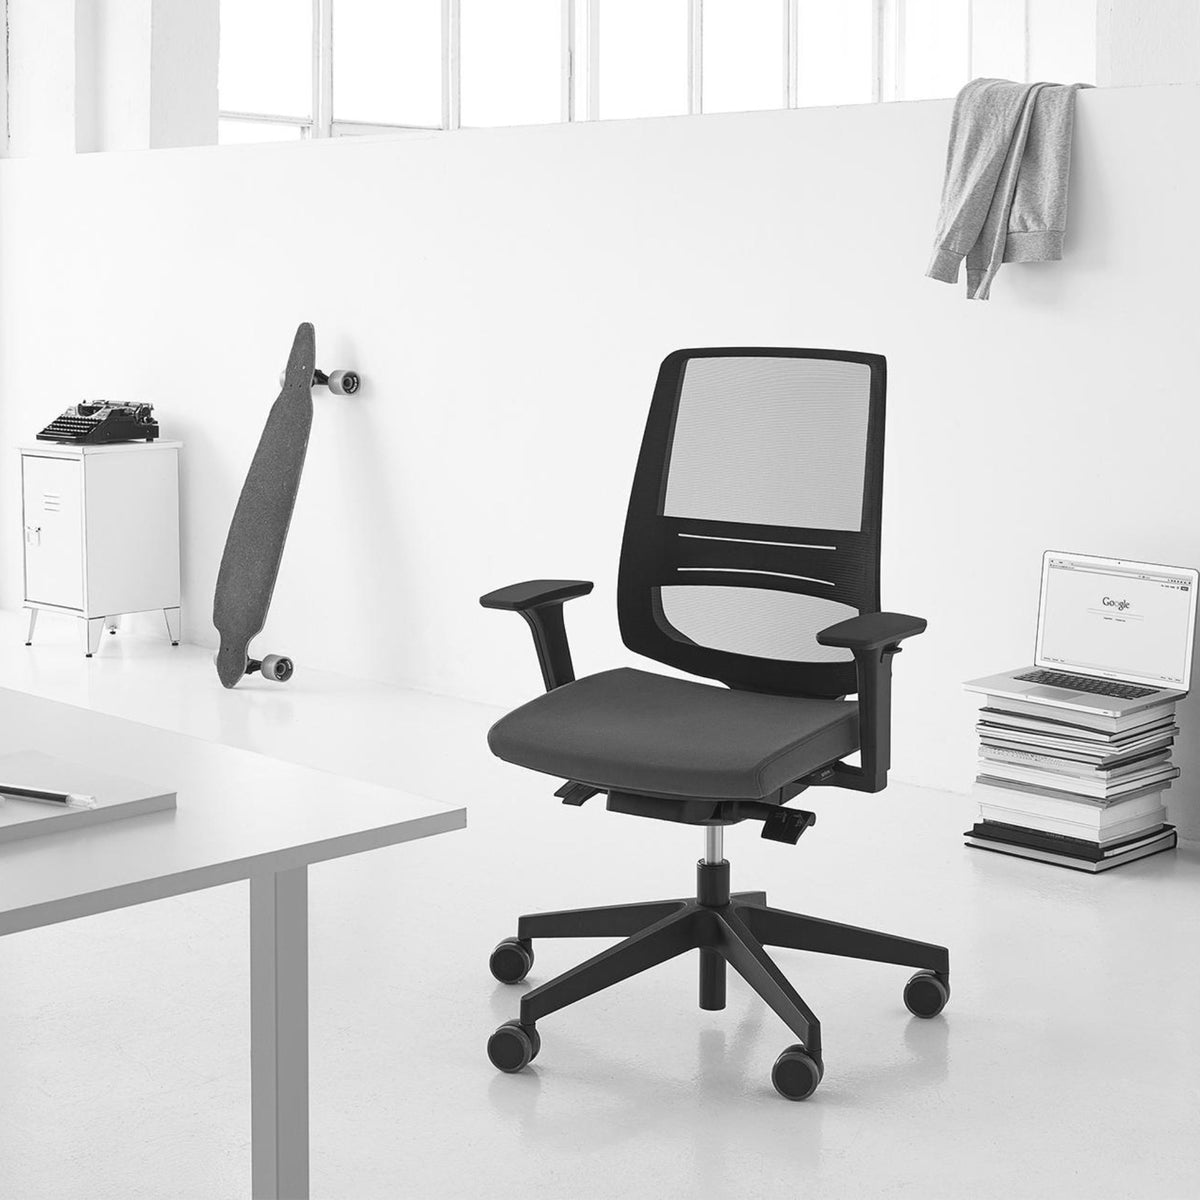 Spacestor LightUp Office Task Chair Seating